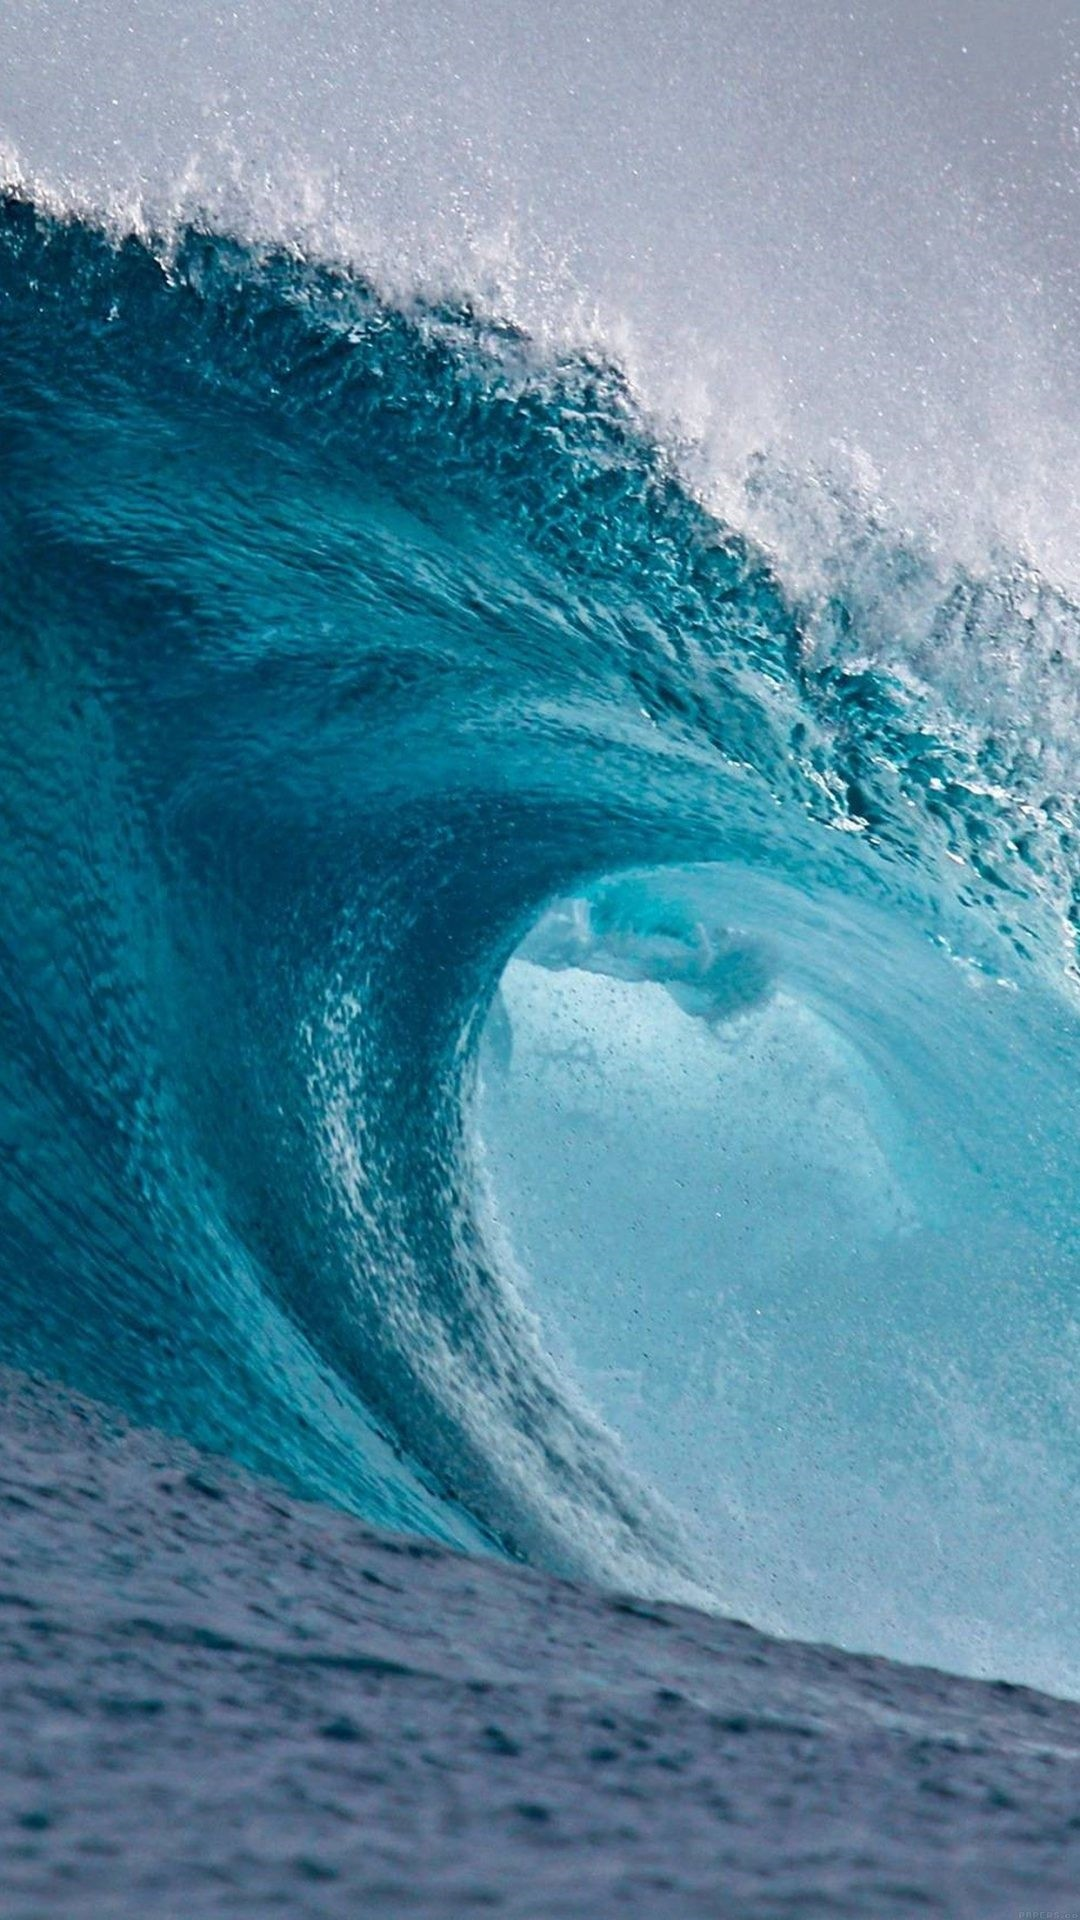 Wave wallpaper for android